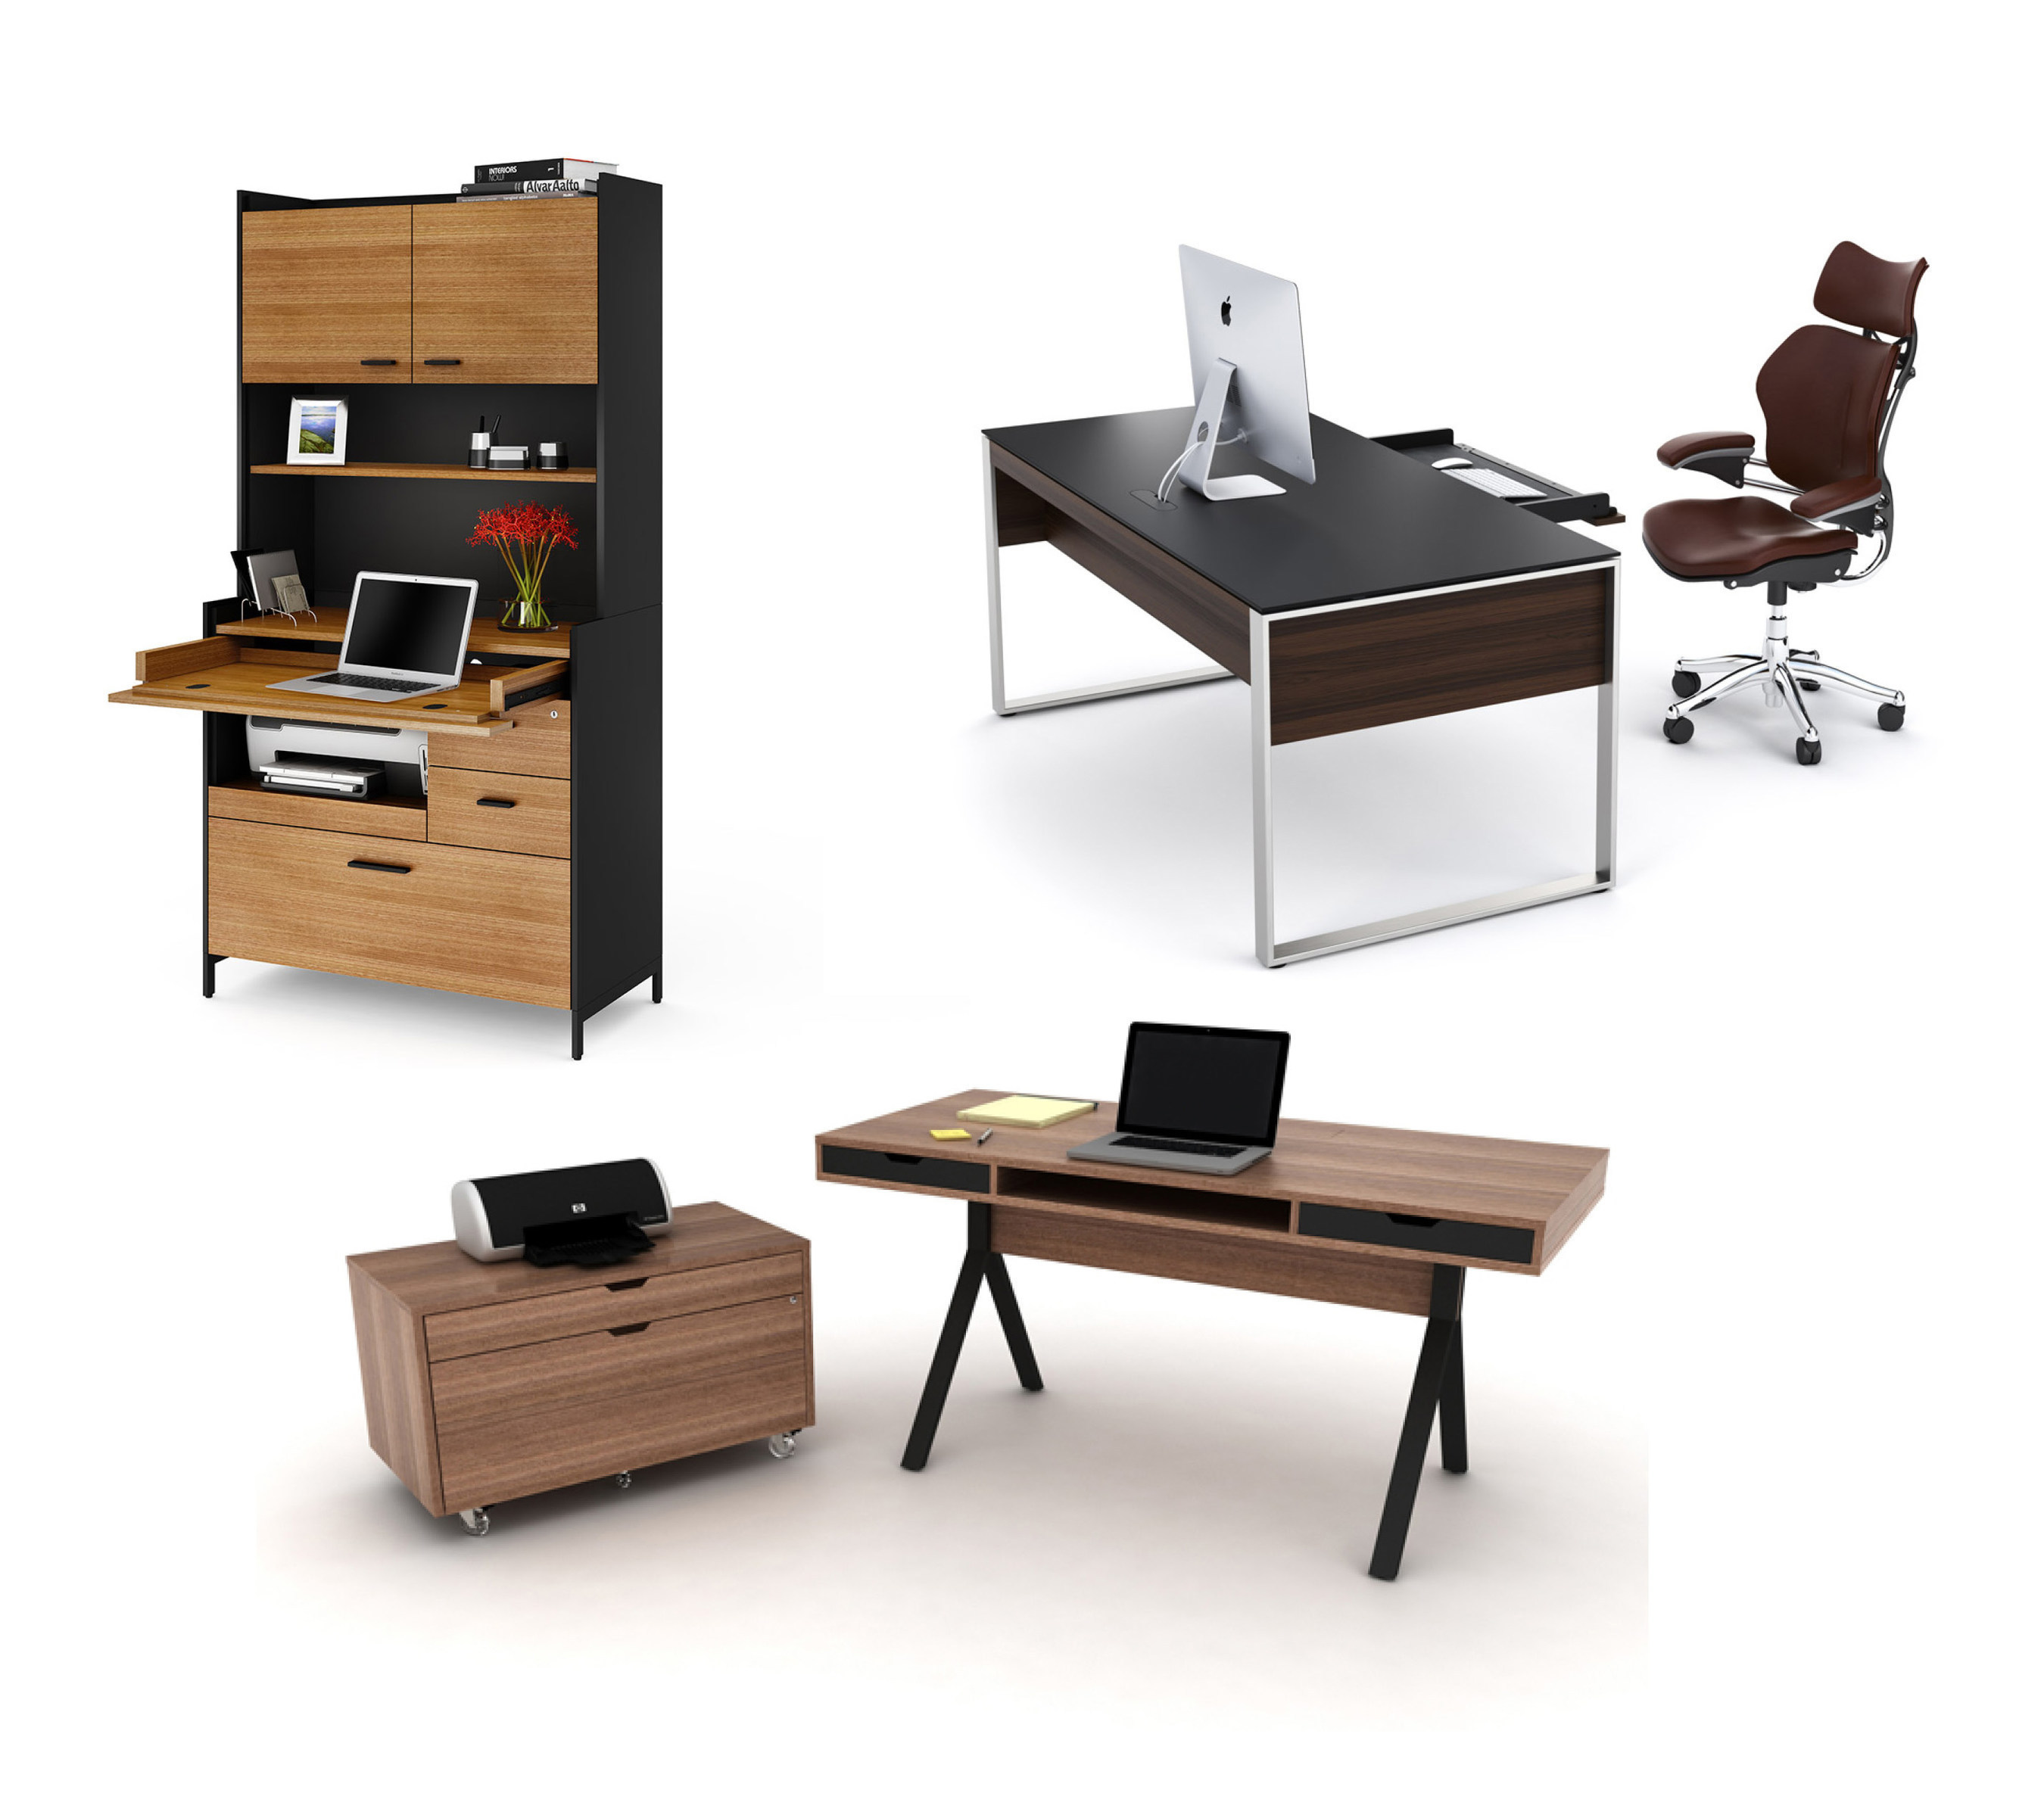 Bdi launches three new office solutions - Desk solutions for small spaces gallery ...